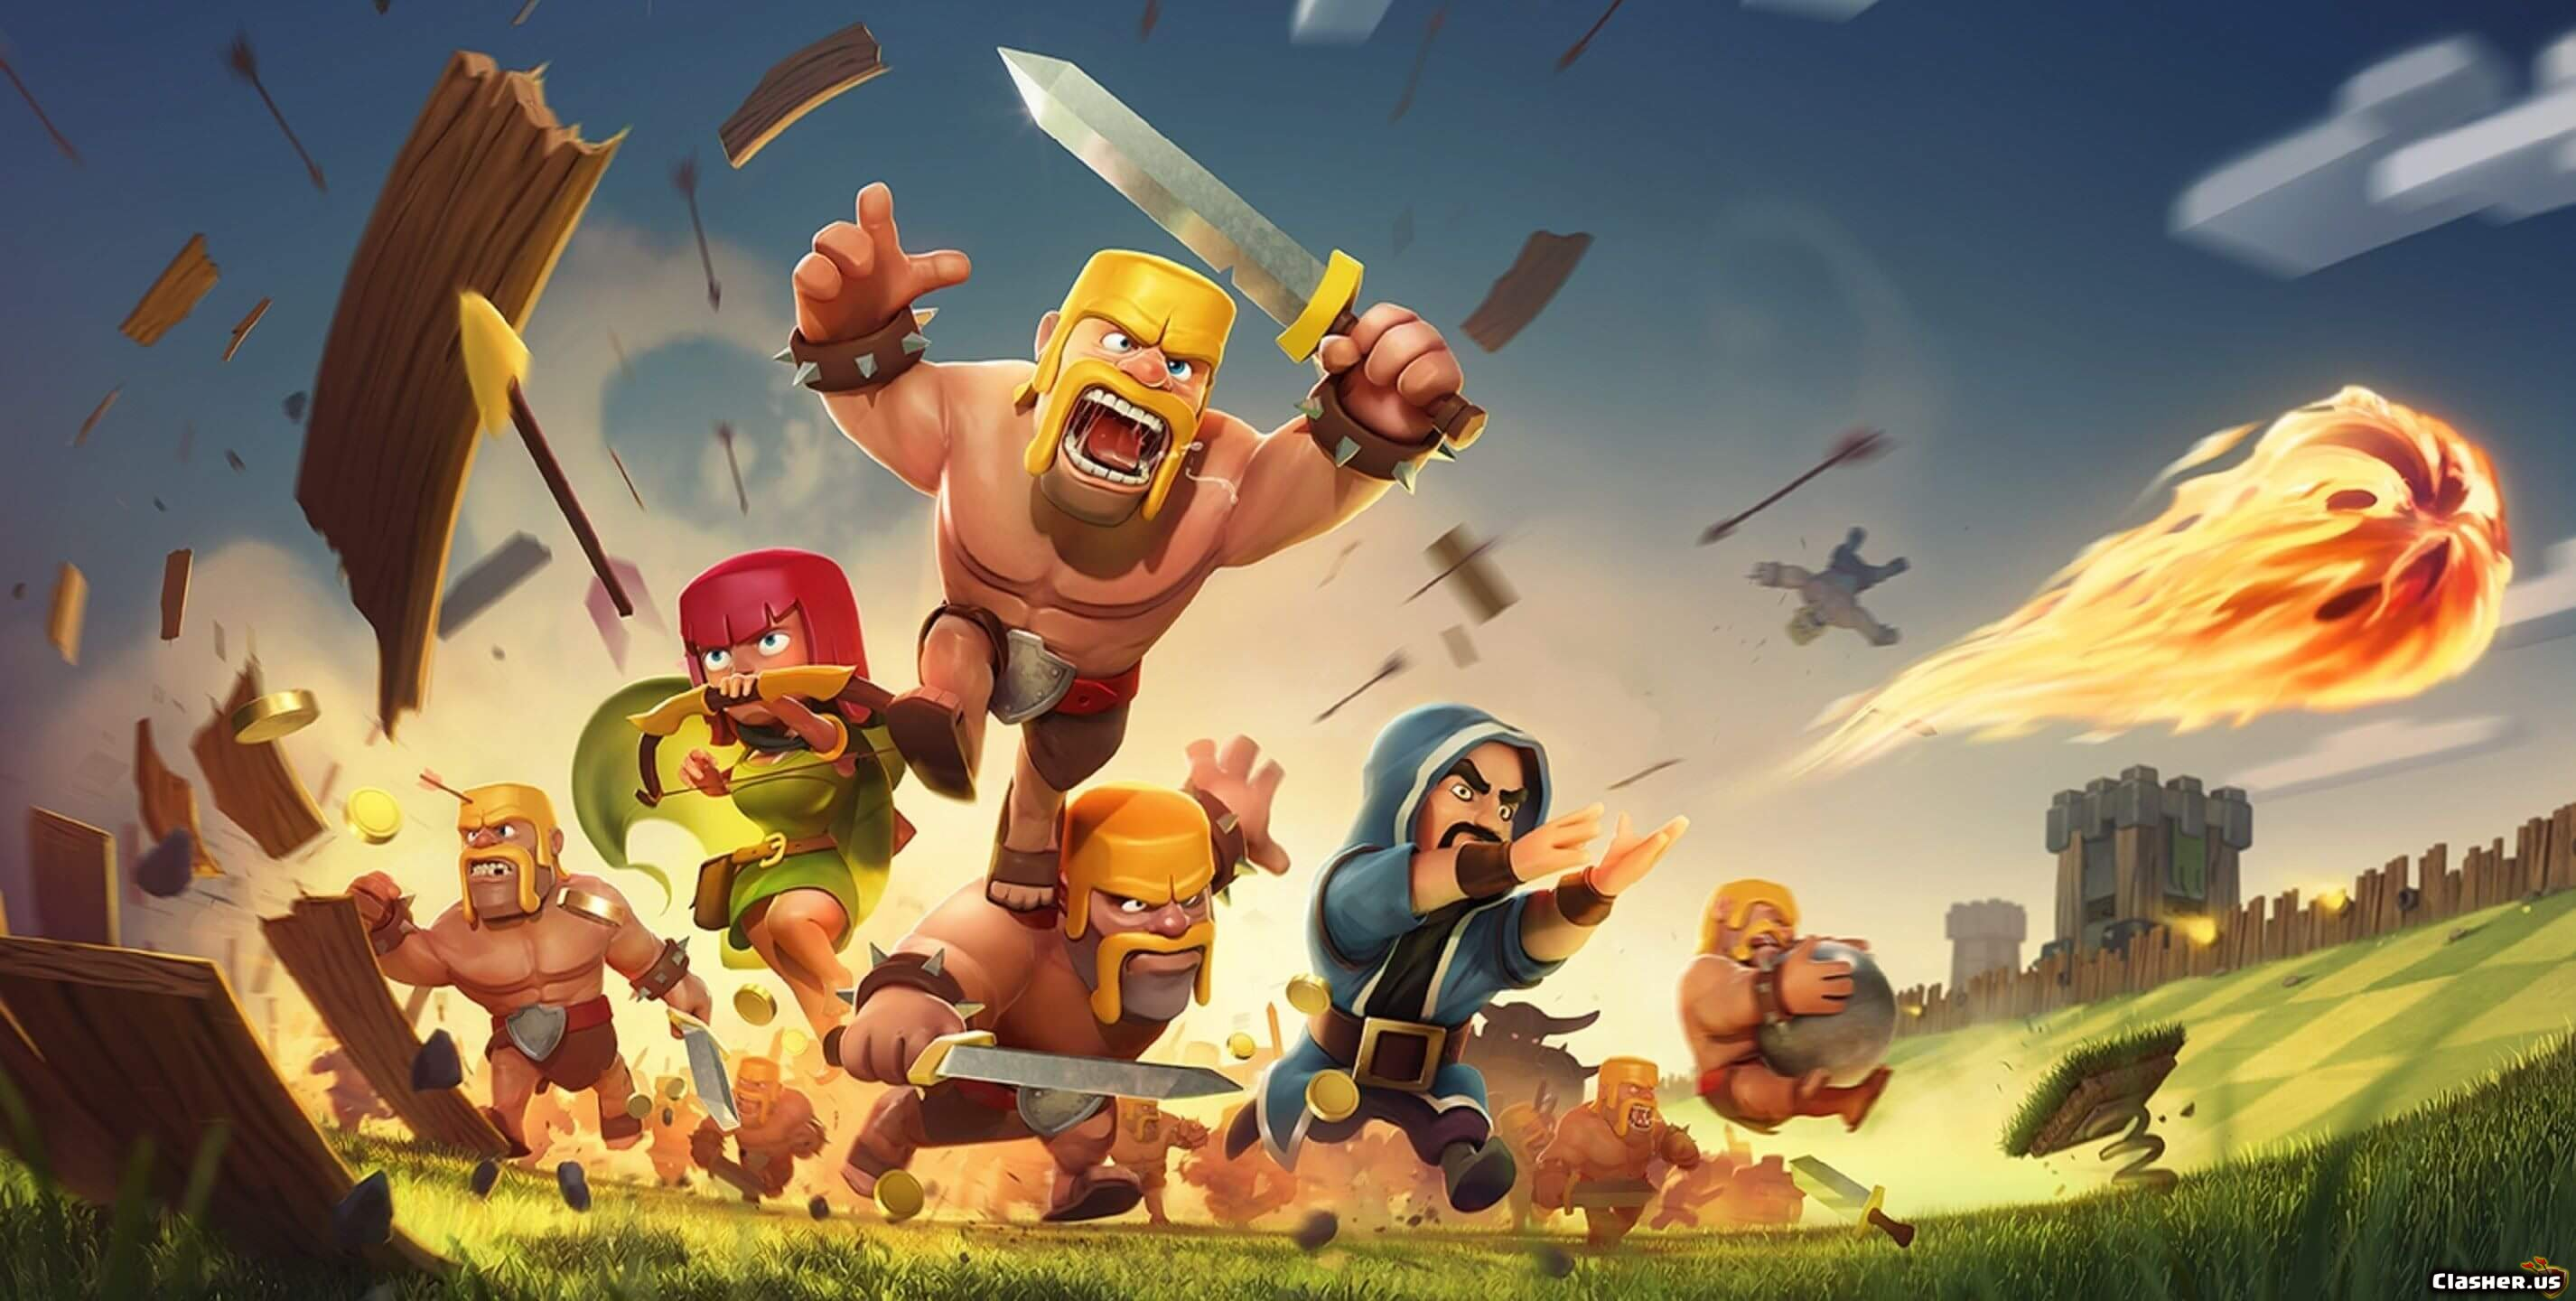 Coc Splash Barbarian Archer Wizard Clash Of Clans Wallpapers